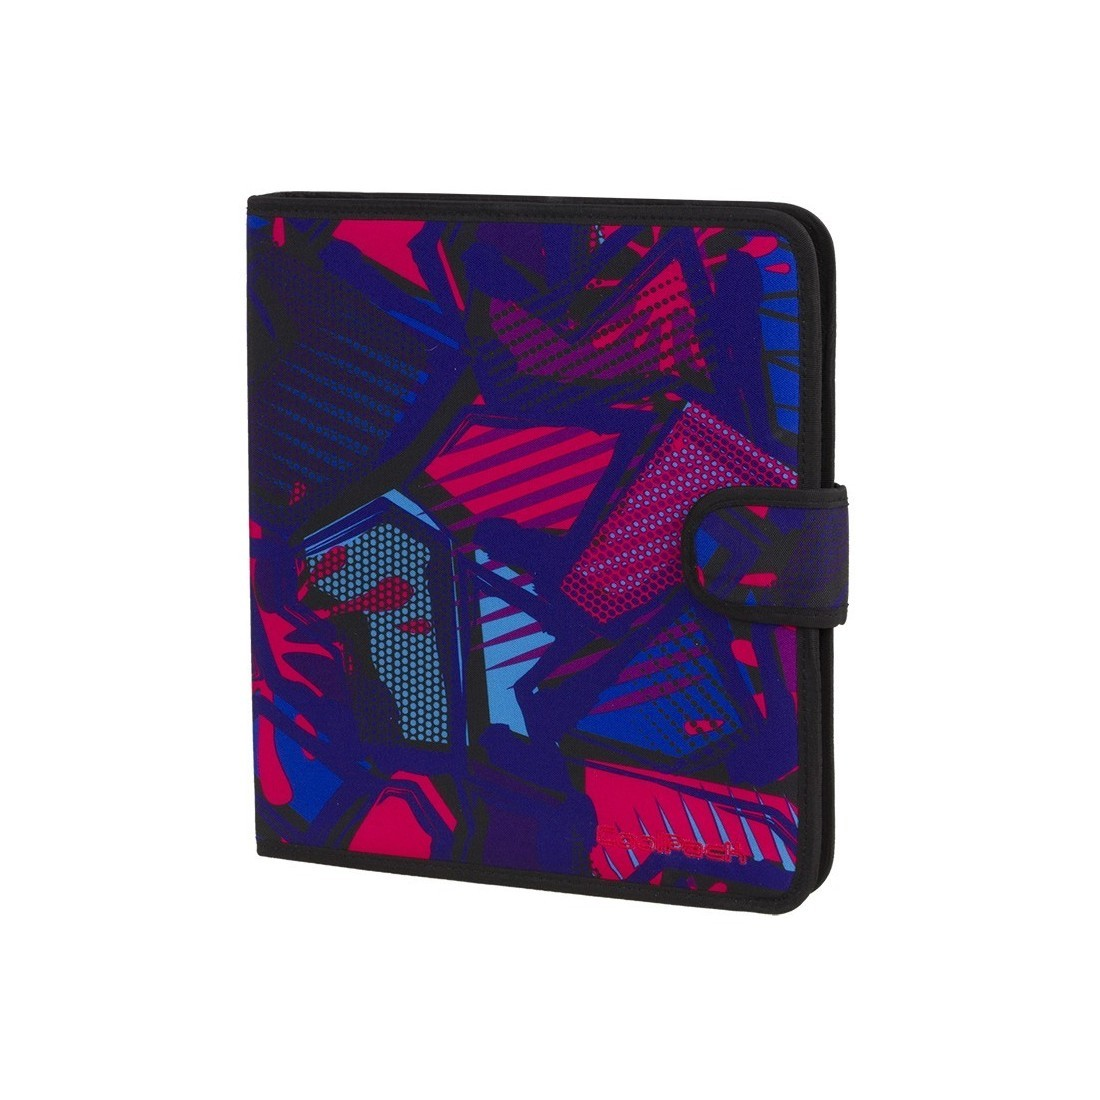 Teczka wielofunkcyjna CoolPack CP MATE CRAZY PINK ABSTRACT A289